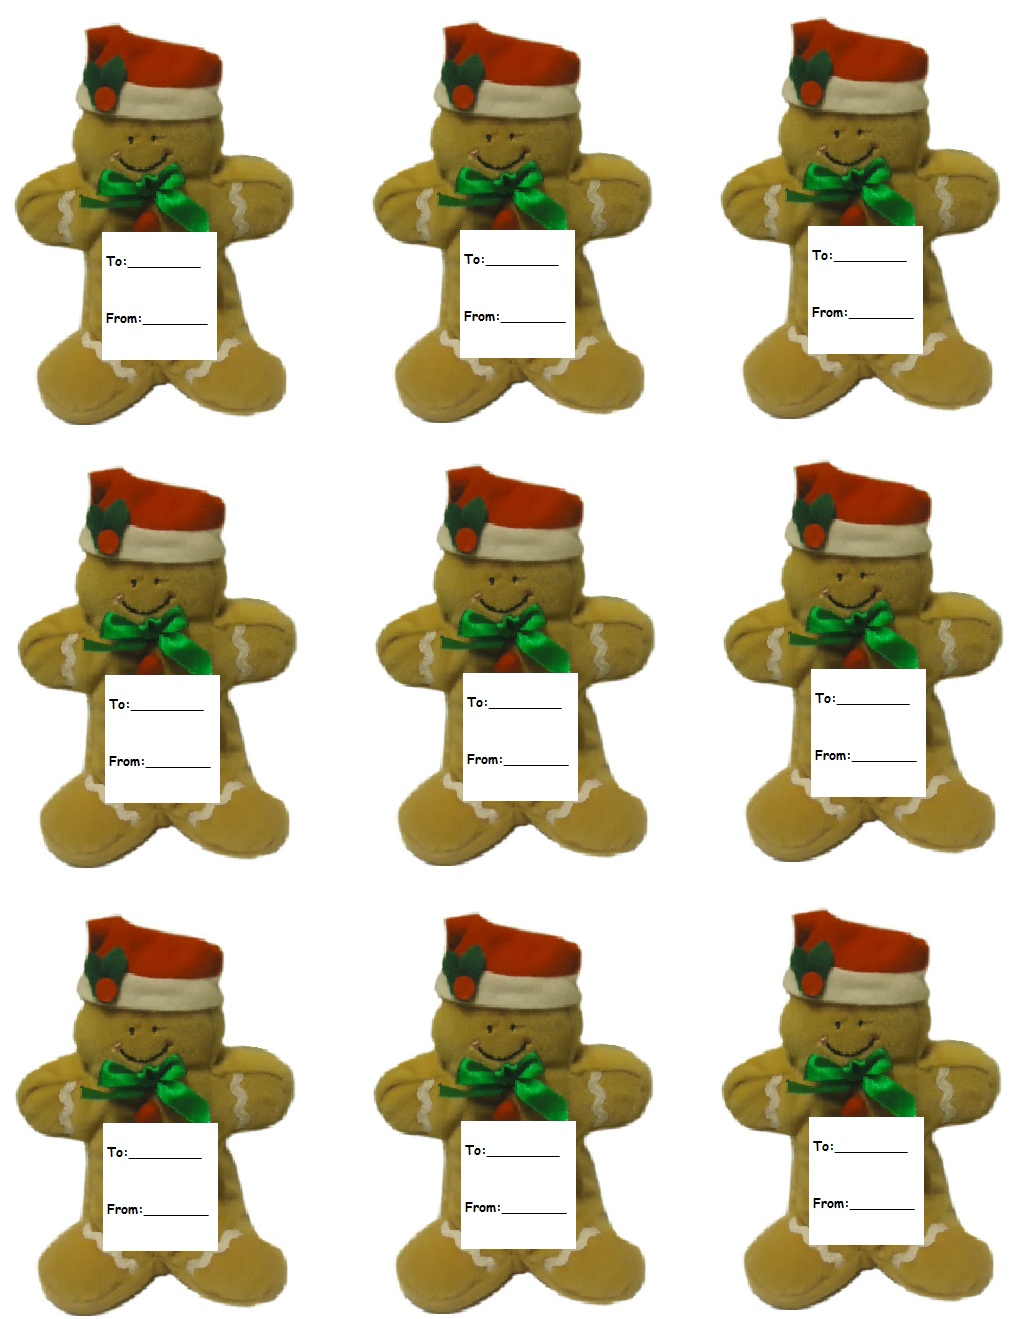 Free Gingerbread Gift Tags For Christmas Presents by Church House Collection- Free Printable Gingerbread Cutout Templates